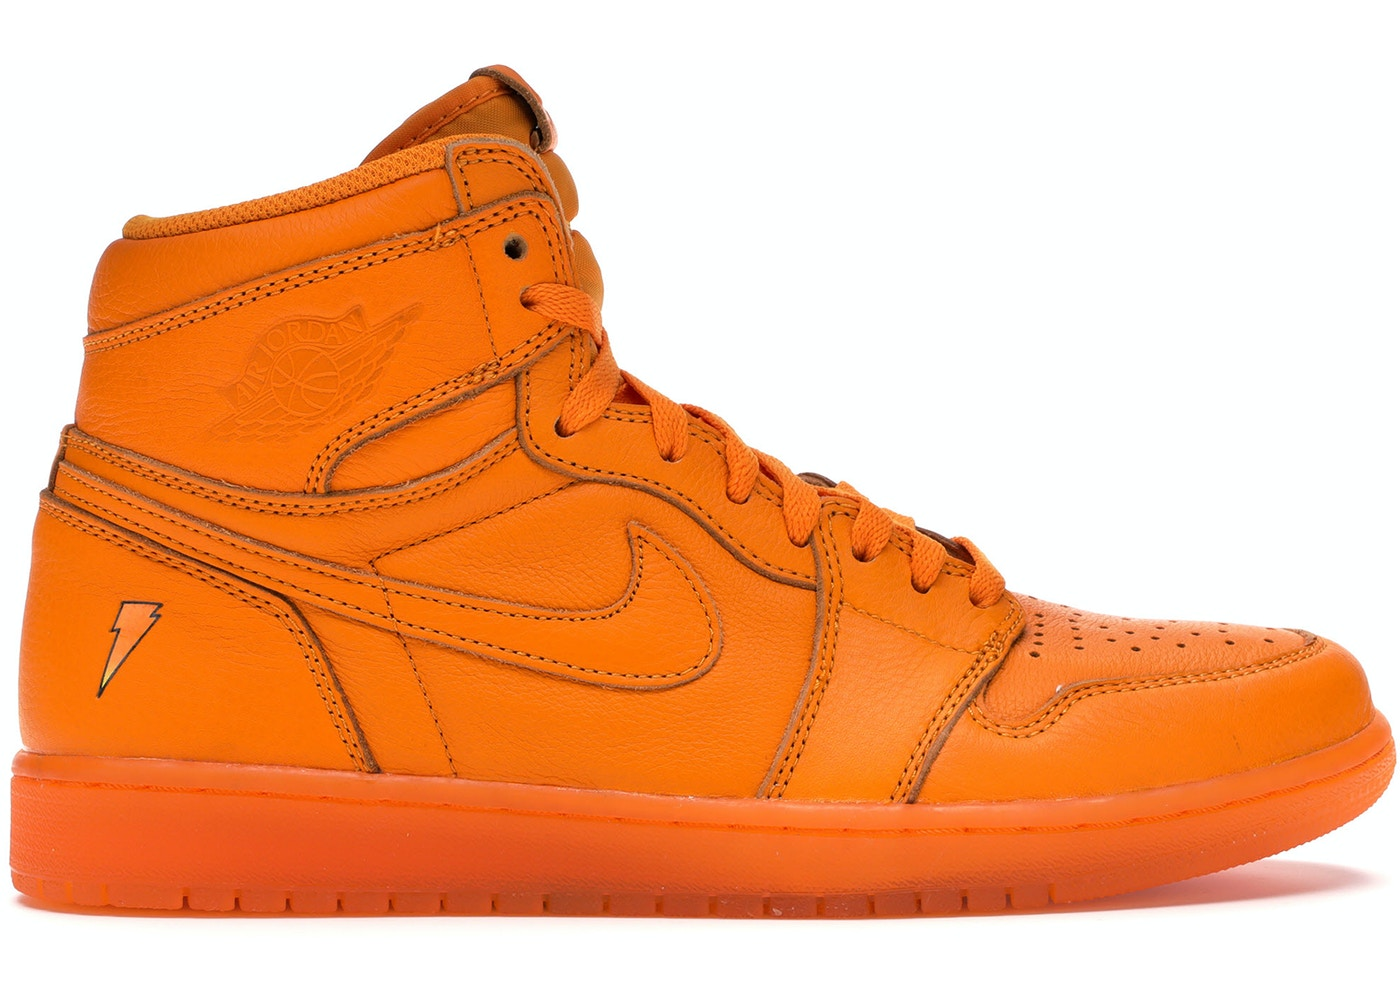 7ca5ff43ce7 Jordan 1 Retro High Gatorade Orange Peel - AJ5997-880